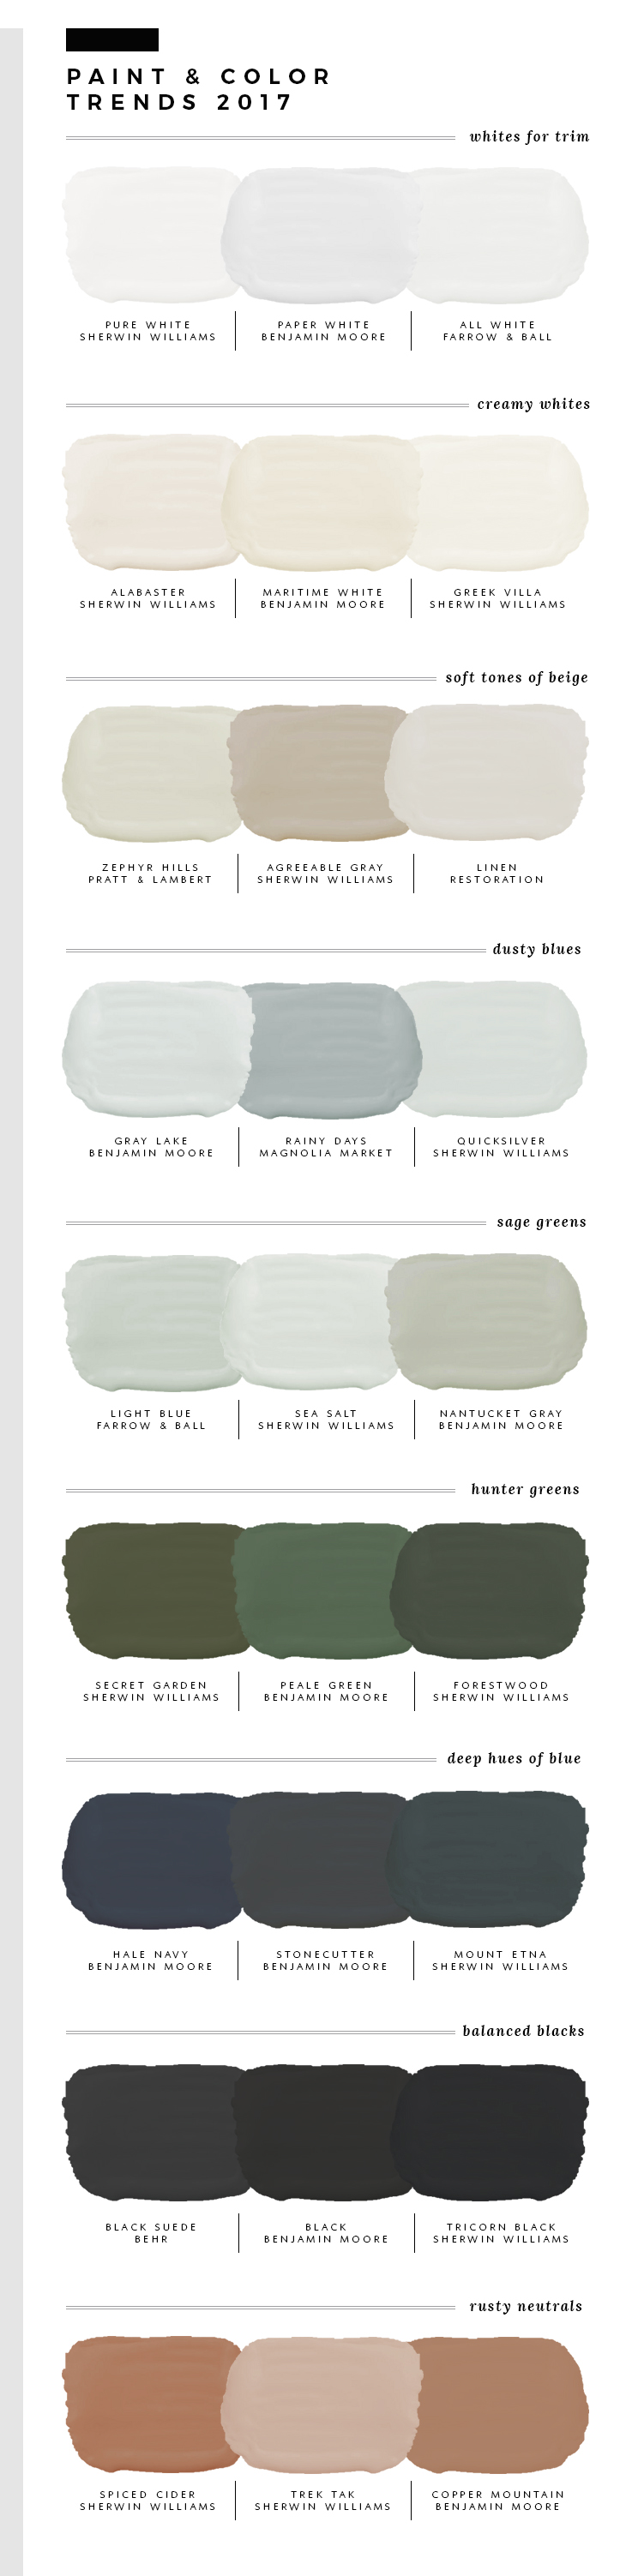 Paint Colors For 2017 28 Images Keep Things Fresh In